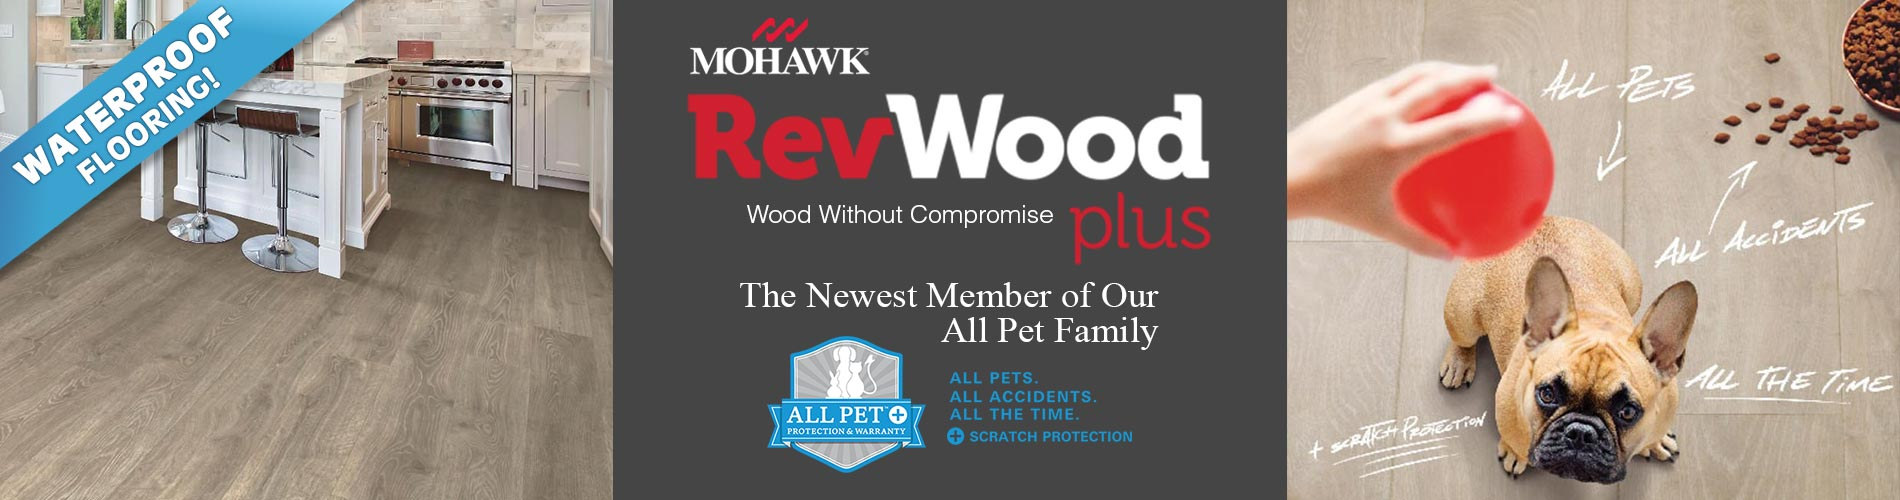 Mohawk RevWood Plus - Wood Without Compromise - All Pet Plus Protection - On Sale Now